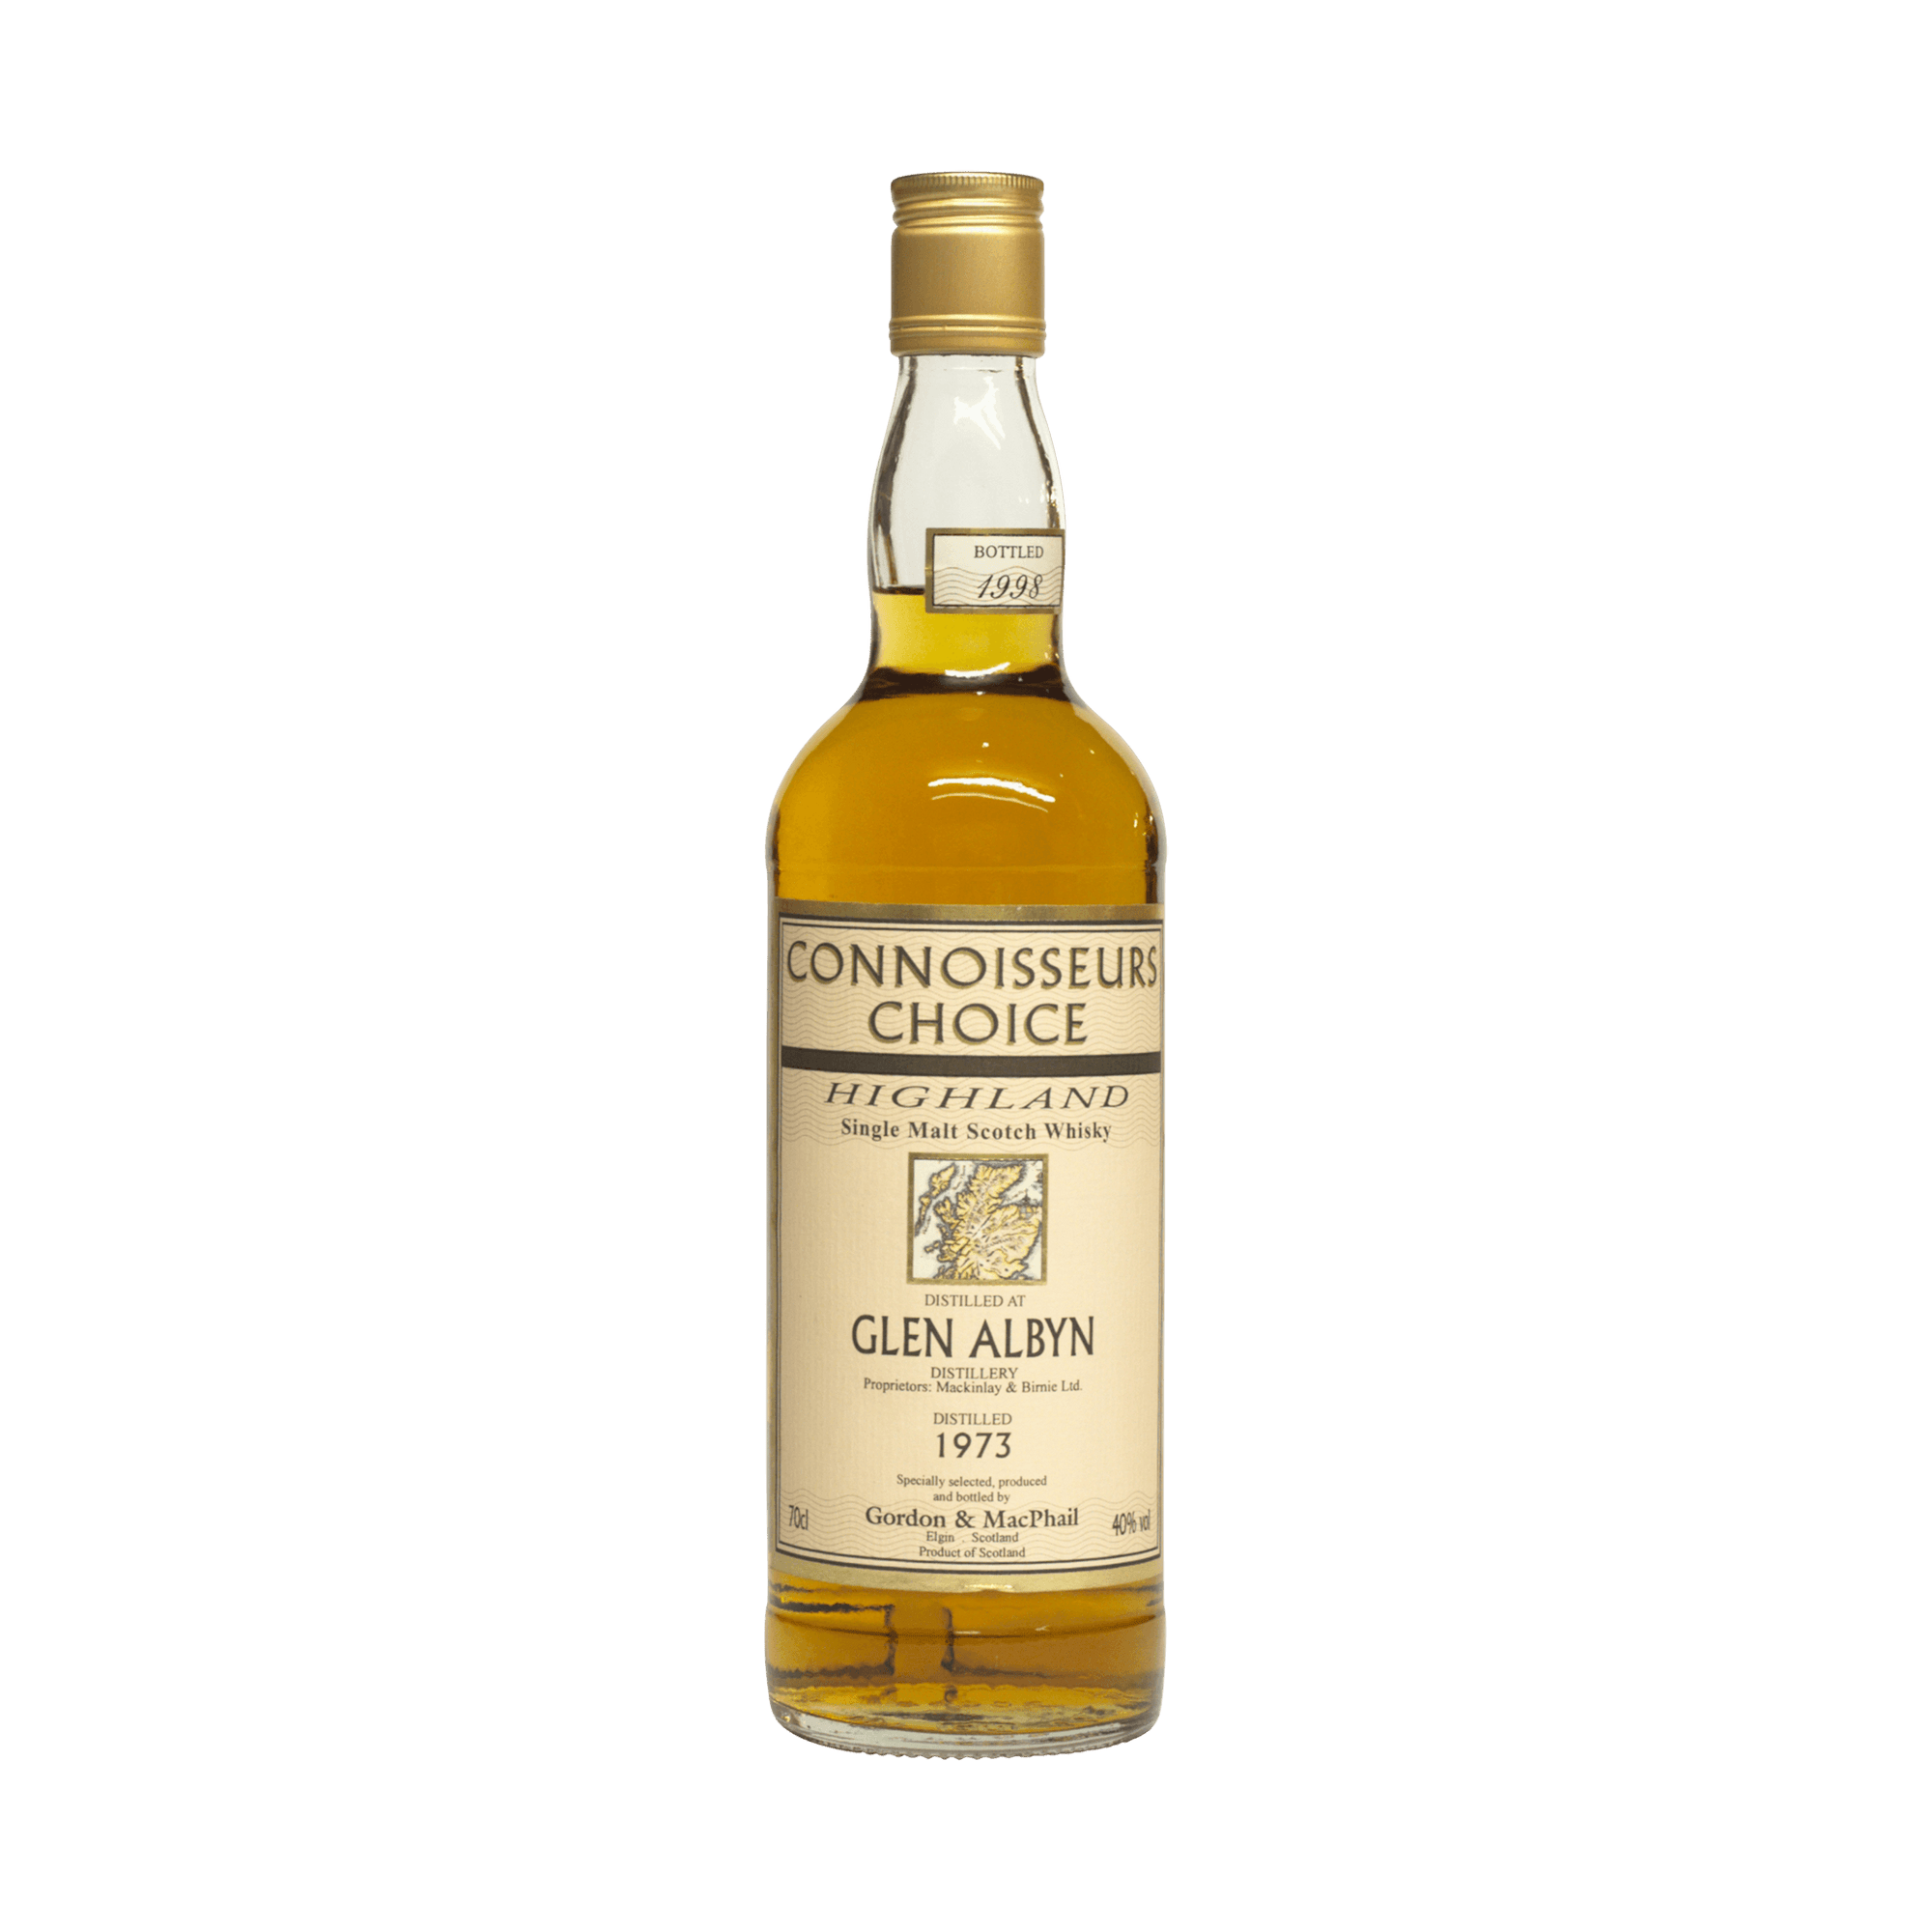 Glen Albyn 1973 25 Year Old 'Connoisseurs Choice' Gordon & MacPhail 40.00%